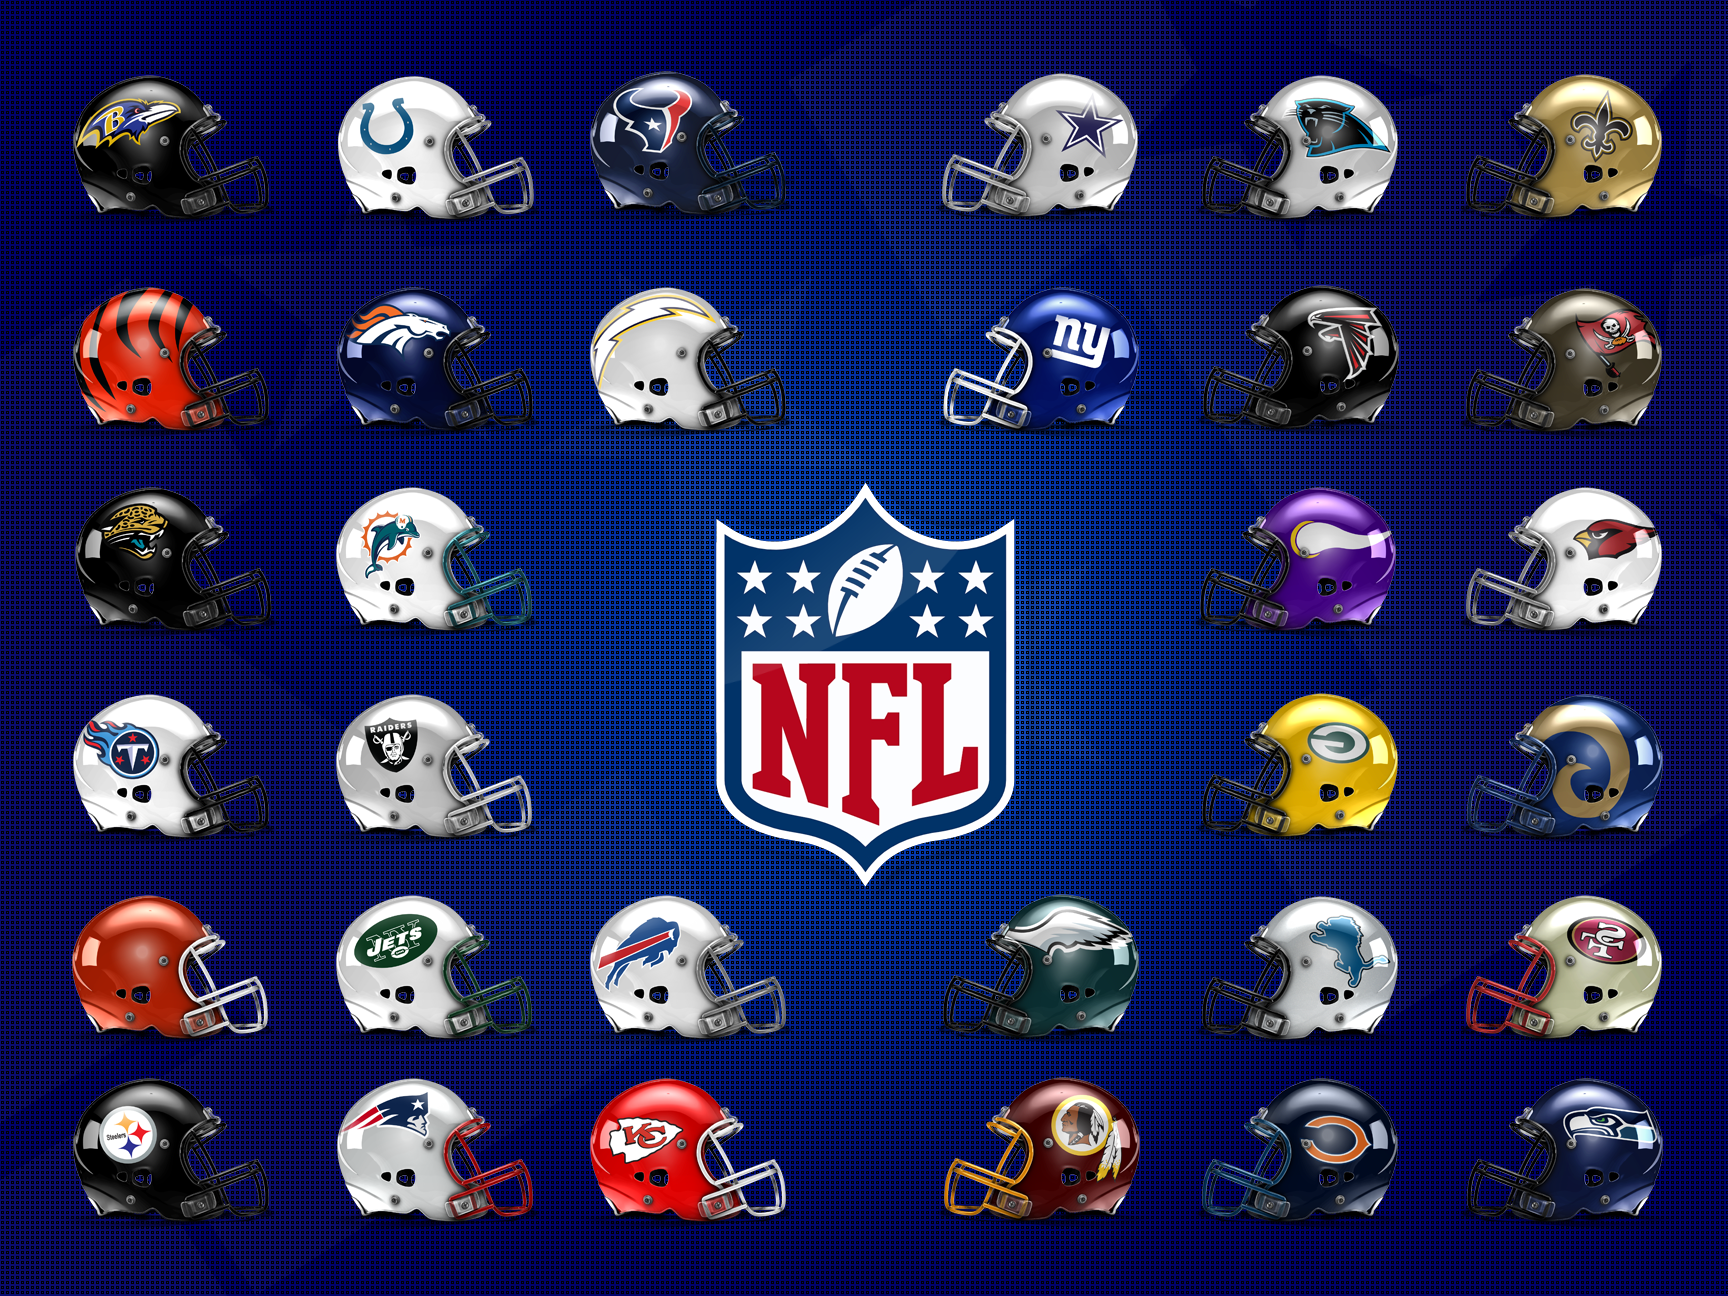 NFL Helmet Poster by SpaceDyeDesigns 1728x1296